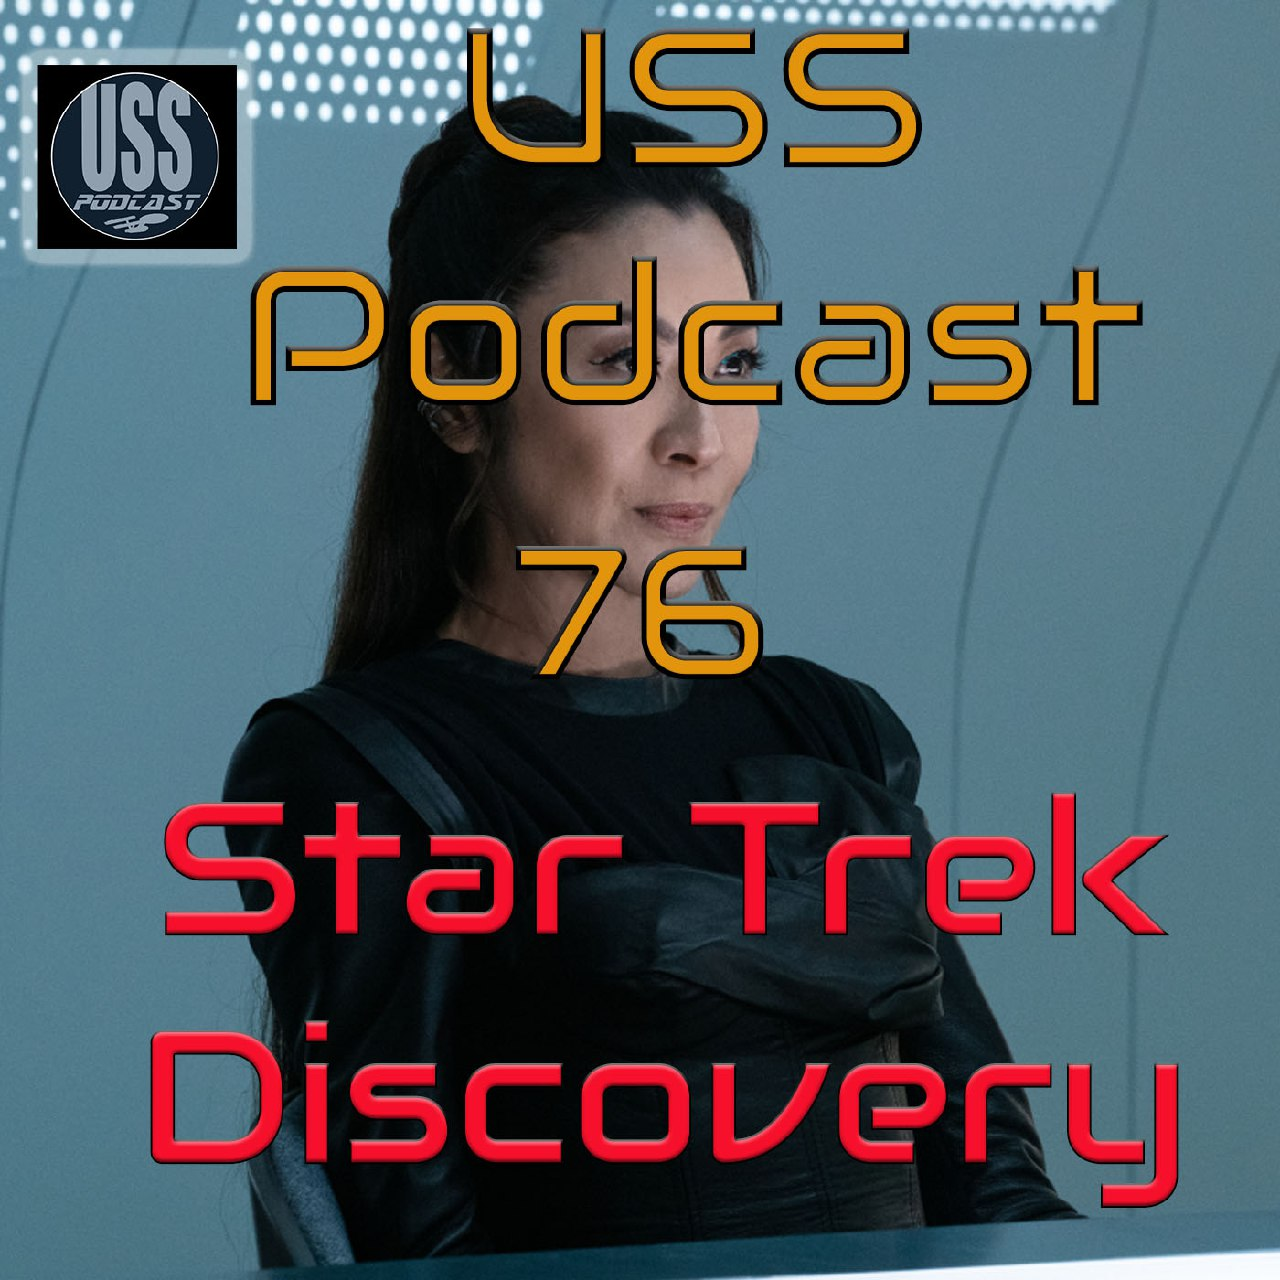 Star Trek Discovery 3×05 Morir en el Intento USS Podcast 76